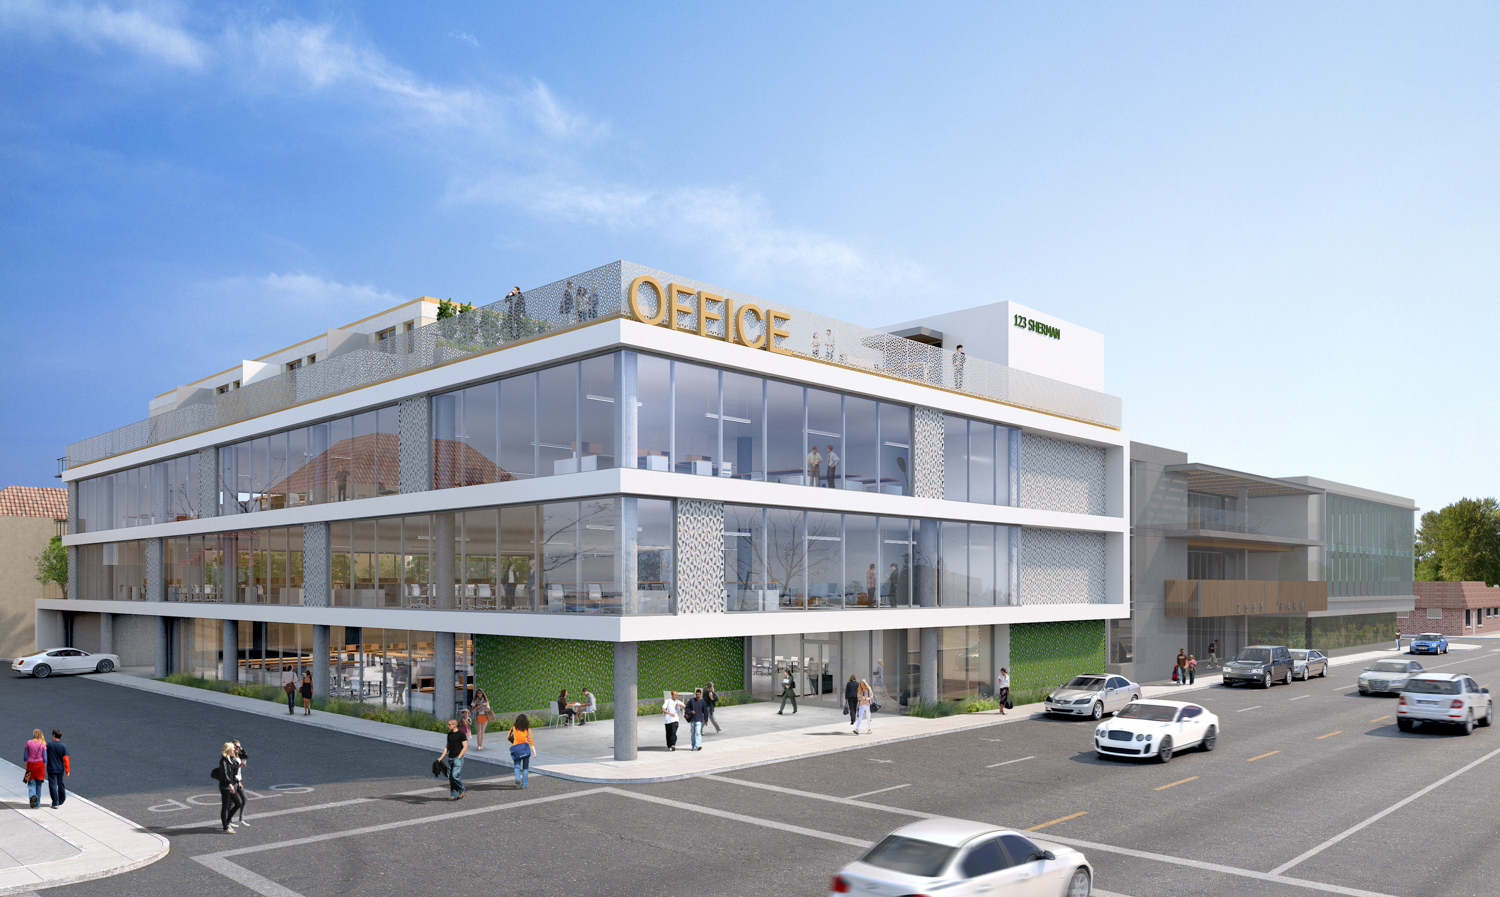 123 Sherman Avenue office building, rendering by KSH Architects